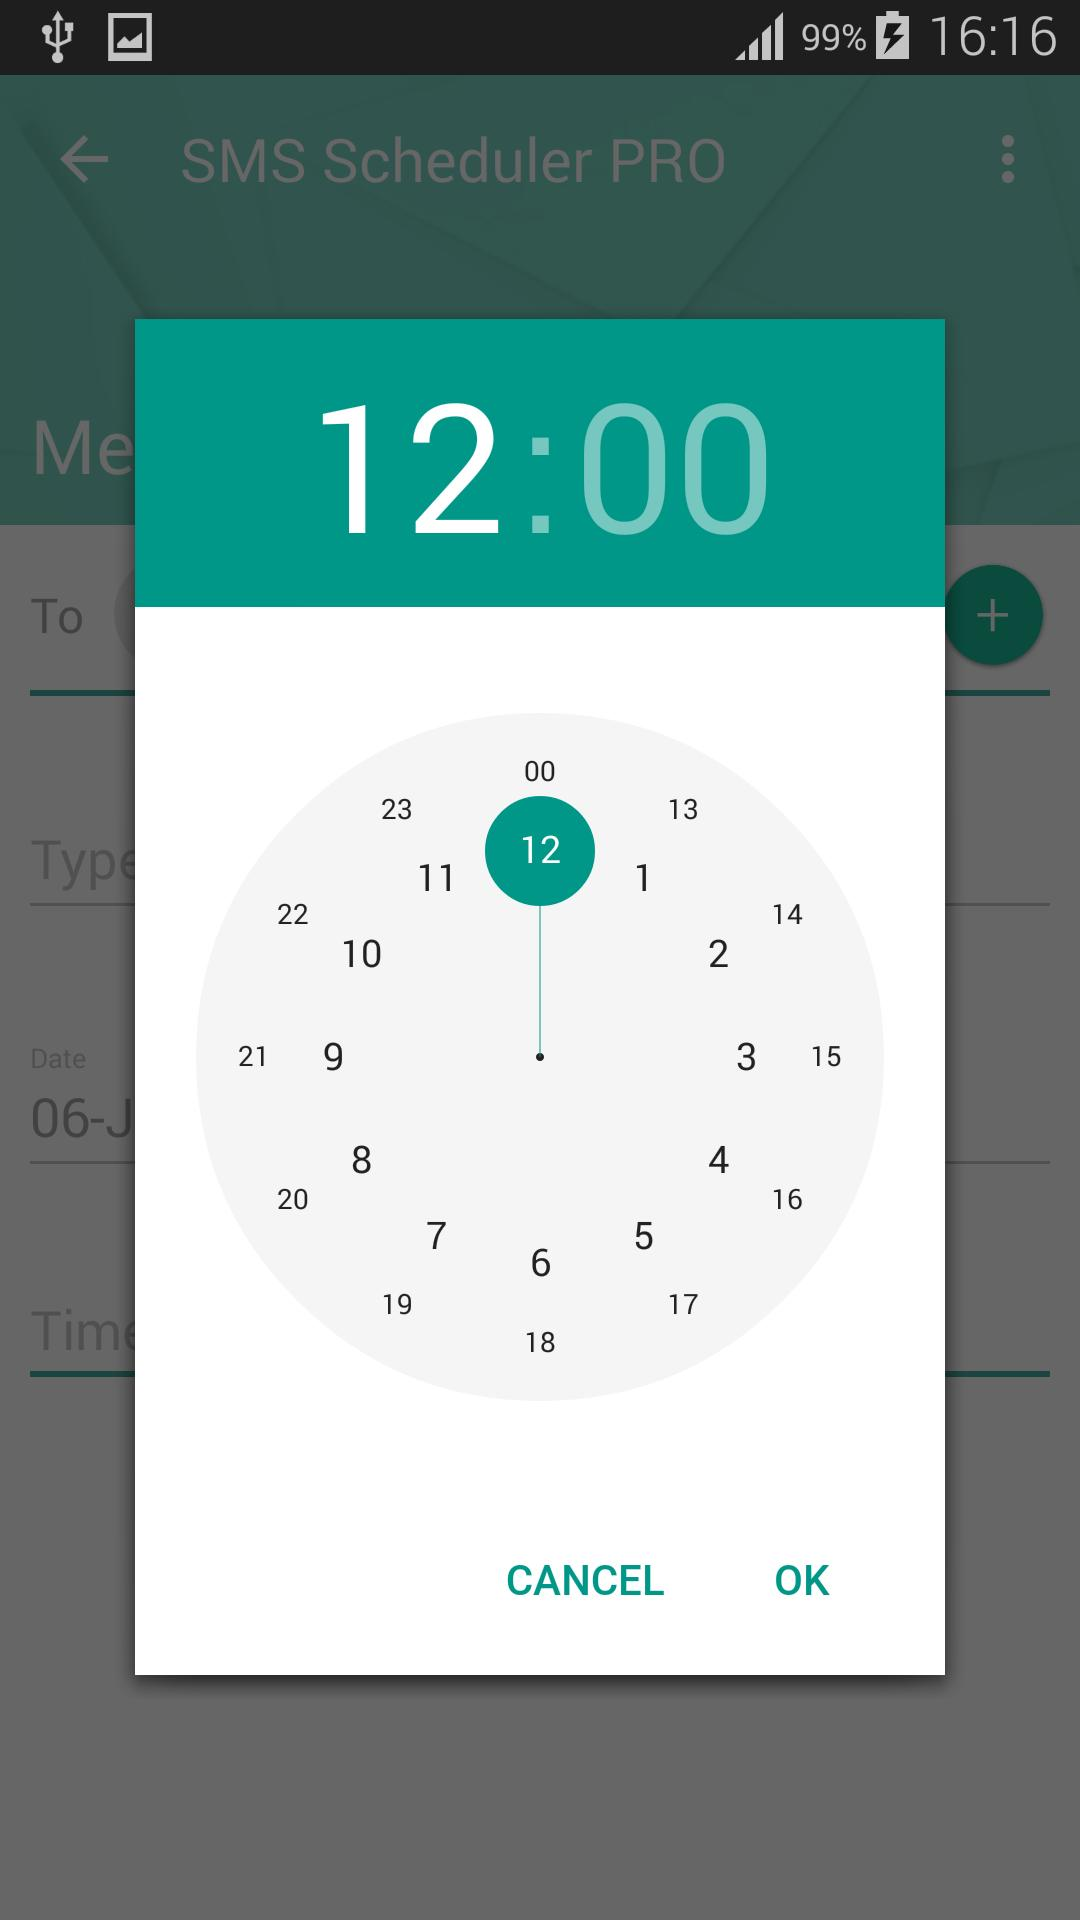 SMS Scheduler PRO for Android - APK Download